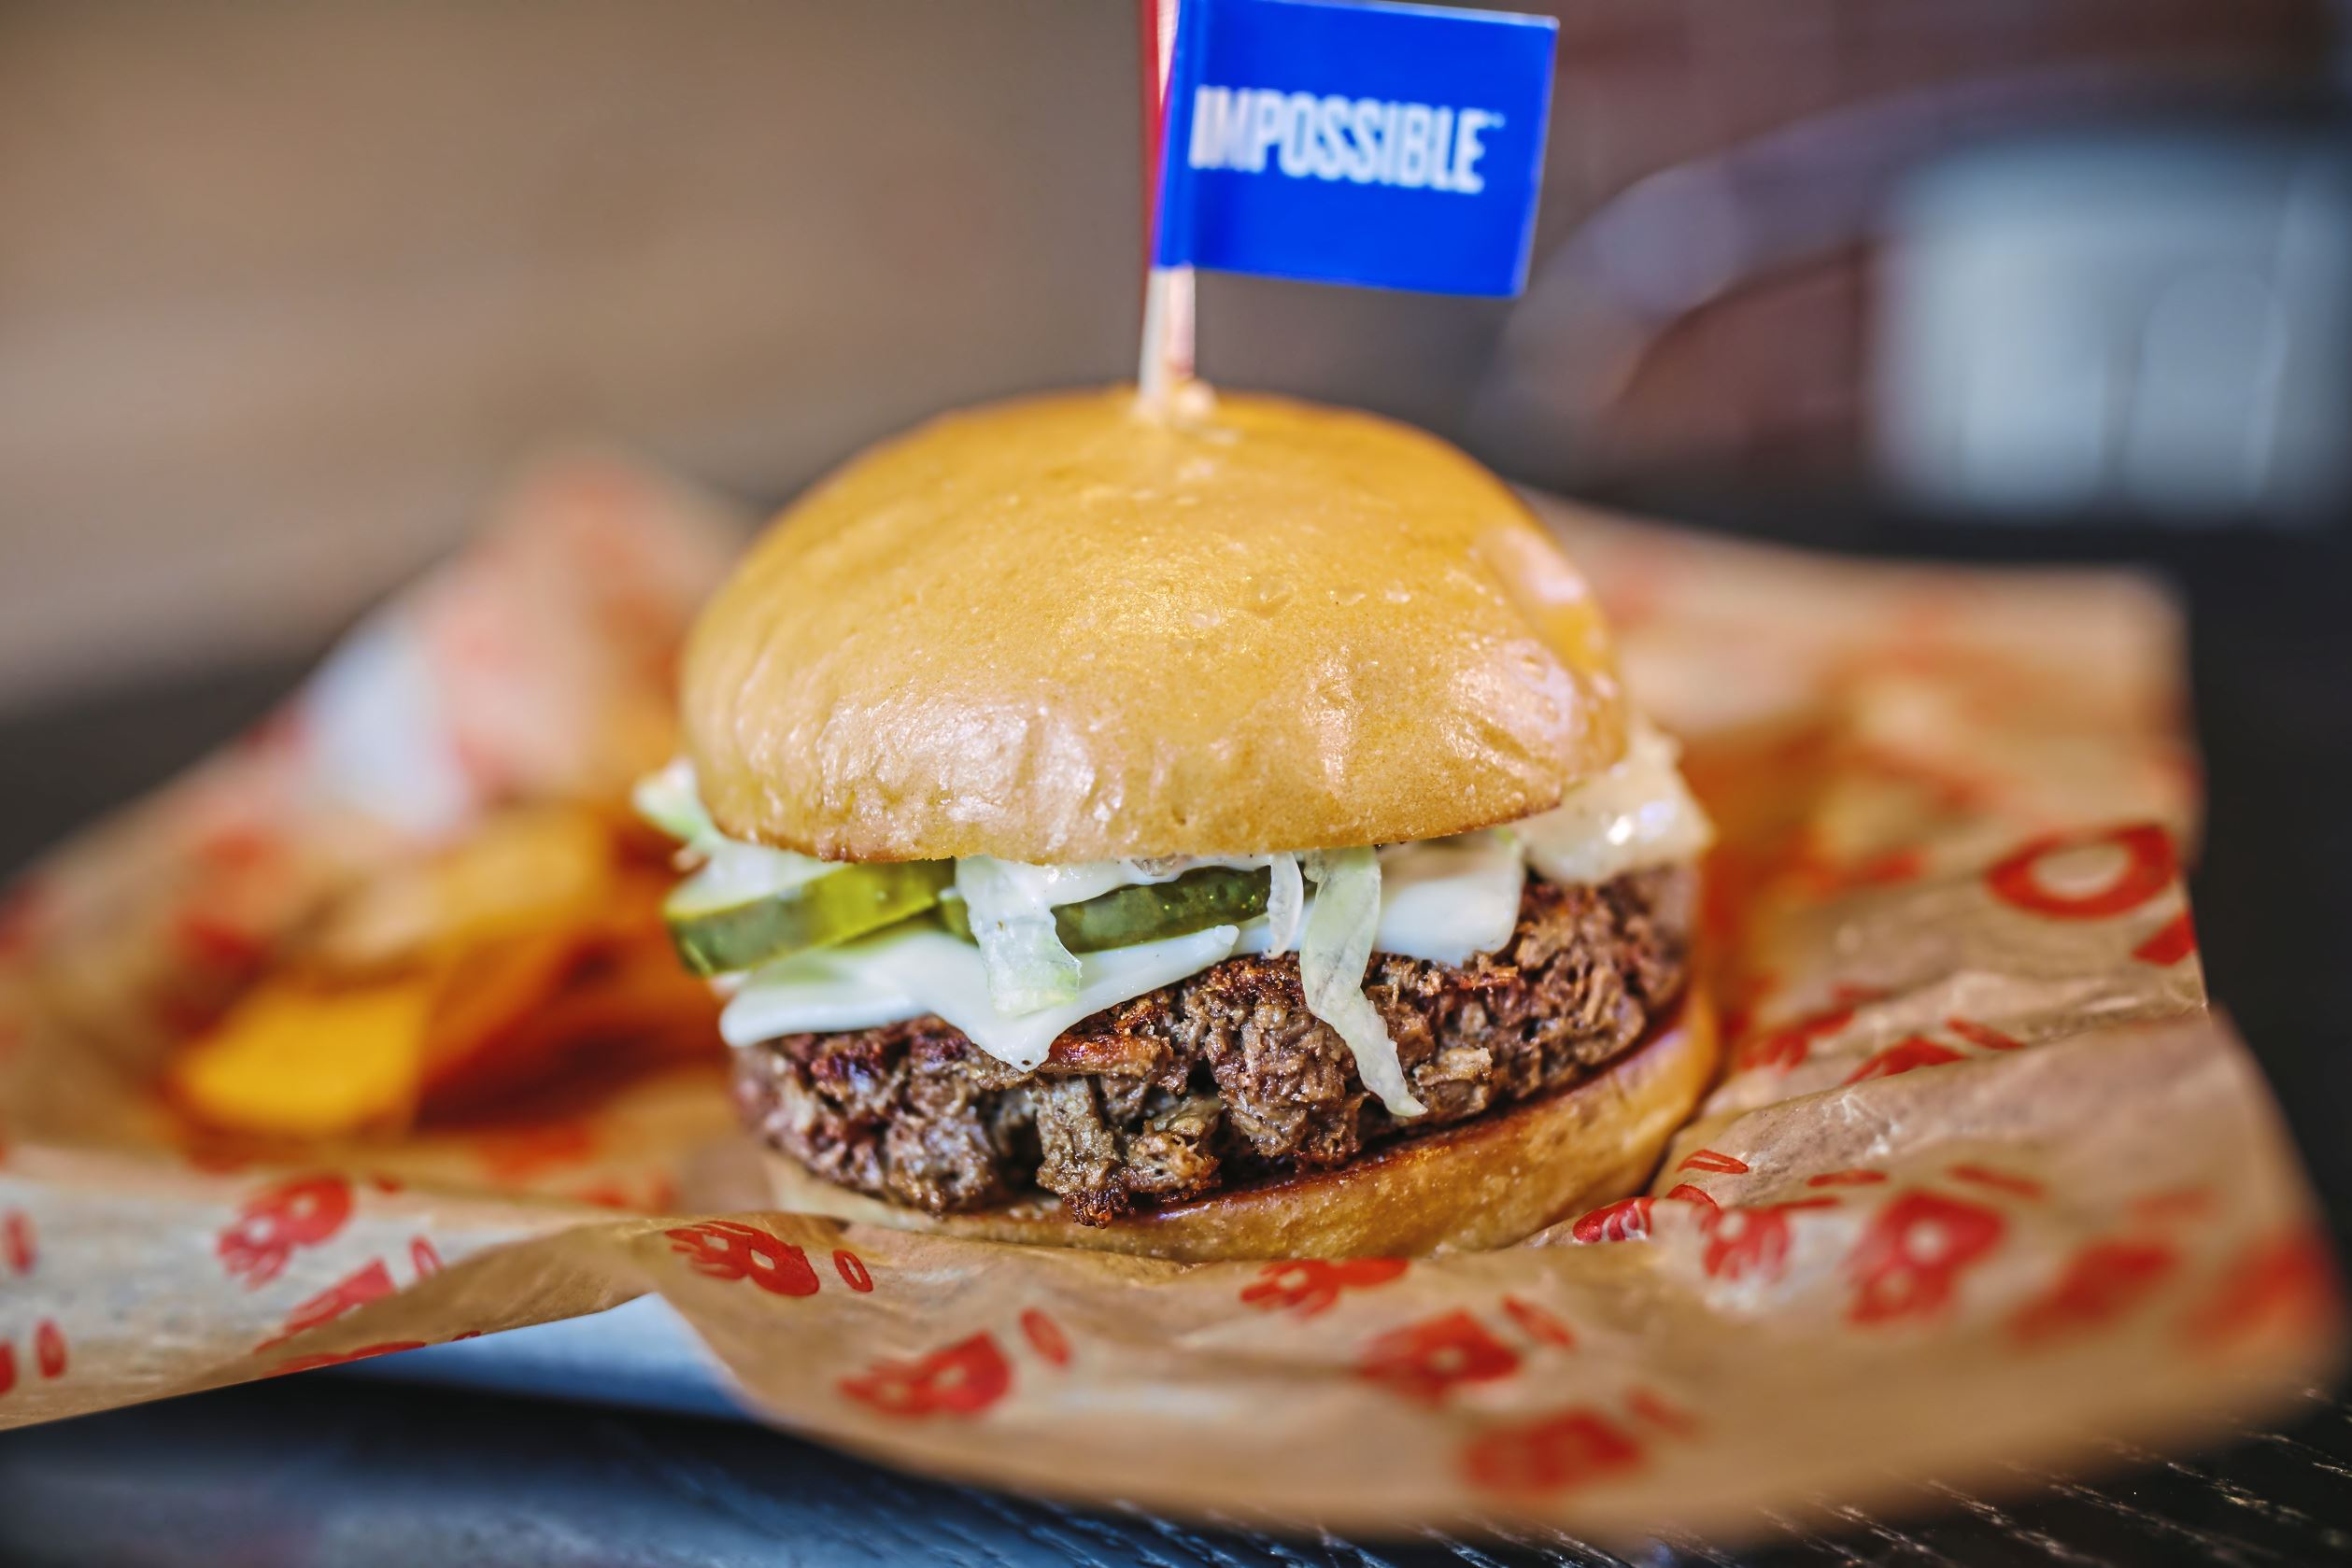 20171002arImpossibleBurg04-3 An Impossible Burger at Burgatory on Monday, October 2, 2017 on the North Side. The restaurant is the only one in the state to sell the meatless burger, starting Oct. 2. (Andrew Rush/Post-Gazette)